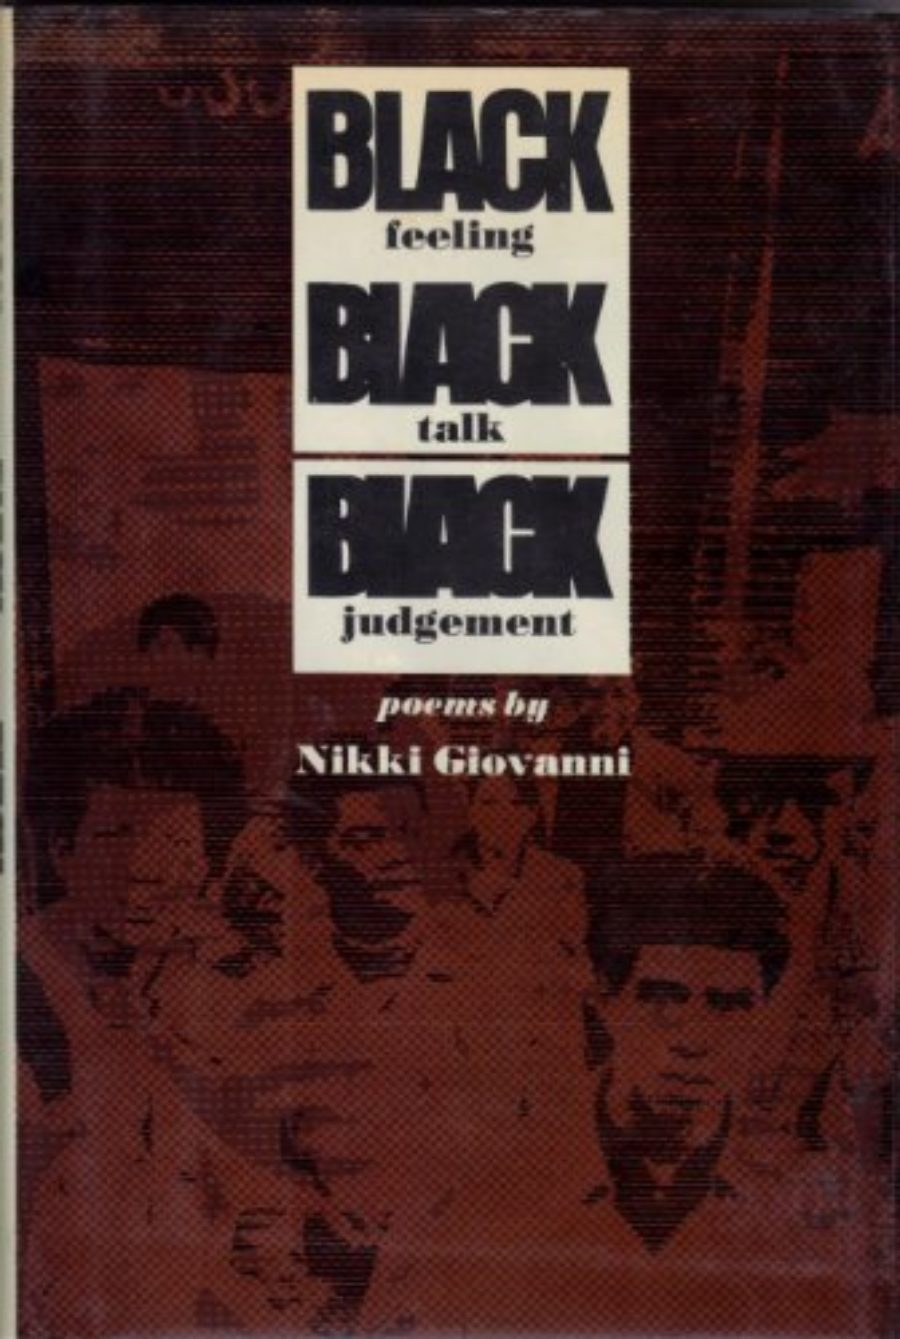 Cover of Black Feeling Black Talk Black Judgement